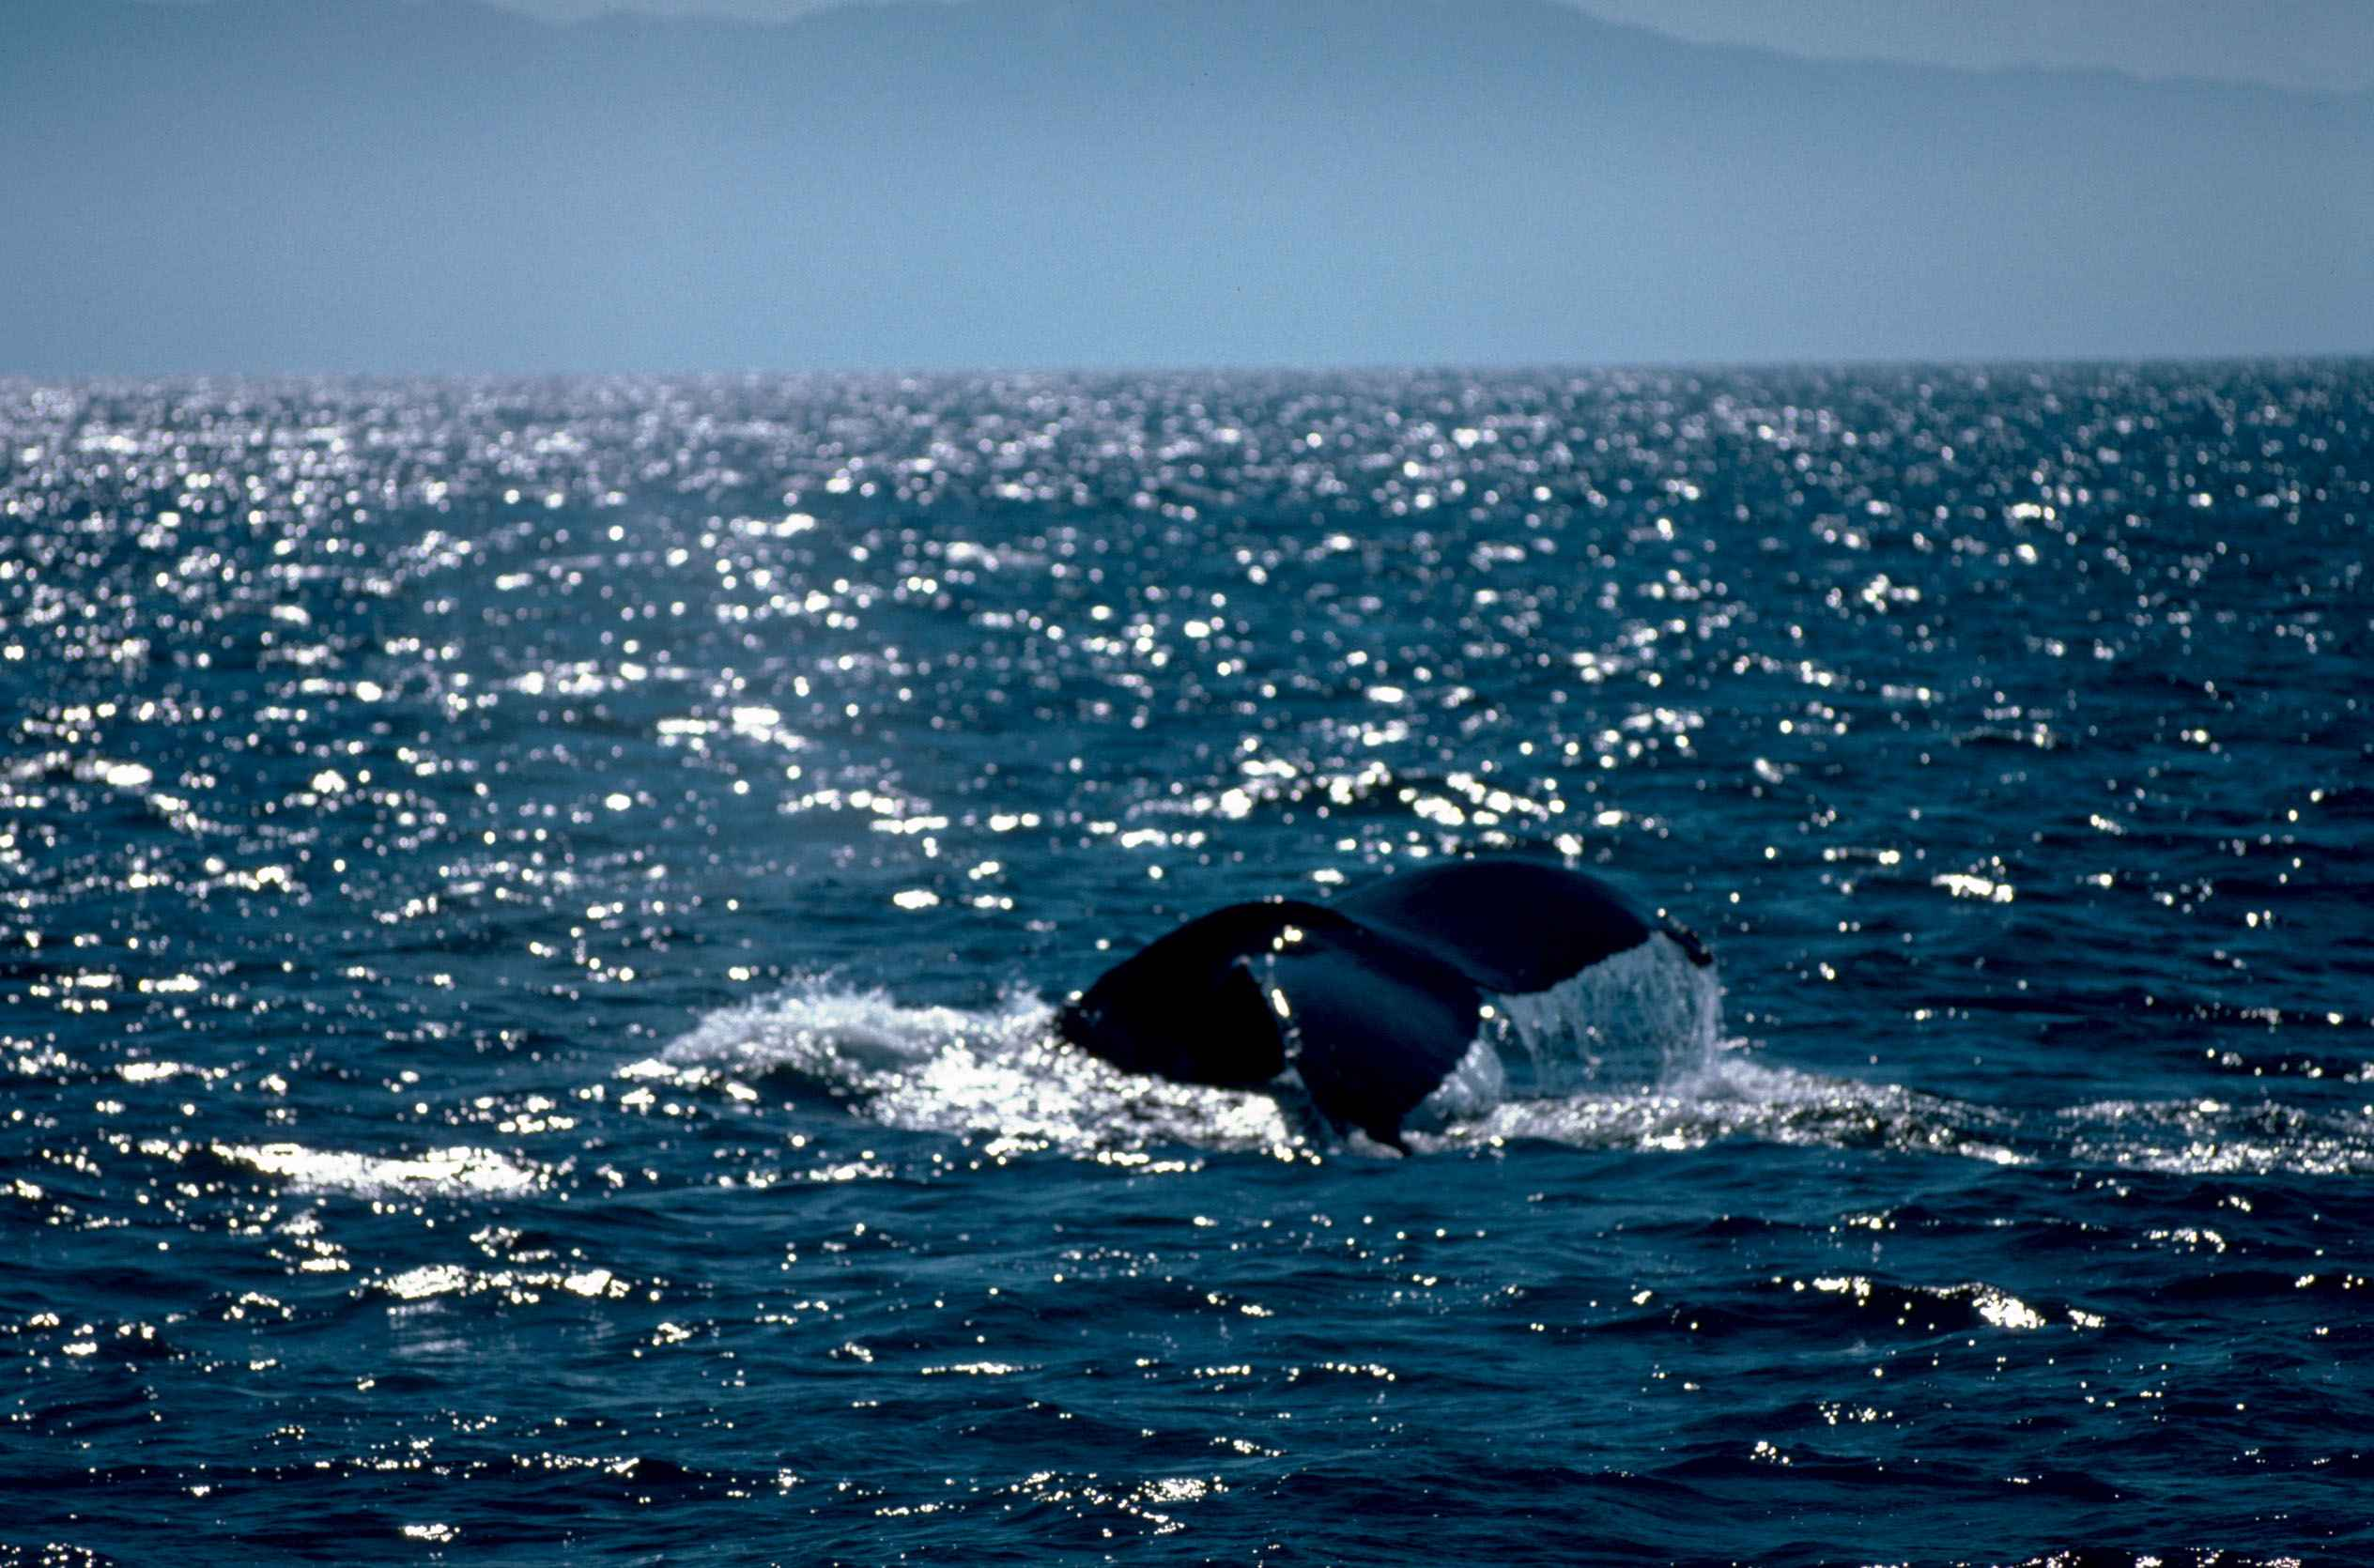 an introduction to the humpback whale sea mammal A humpback whale spotted off the coast of hawaii entangled in 285ft of  the  animal was first spotted on thursday by the captain of a fishing boat  ocean  giant breaches 'several times' next to response team after being released  a  california lawmaker introduced a bill to ban live performances and.